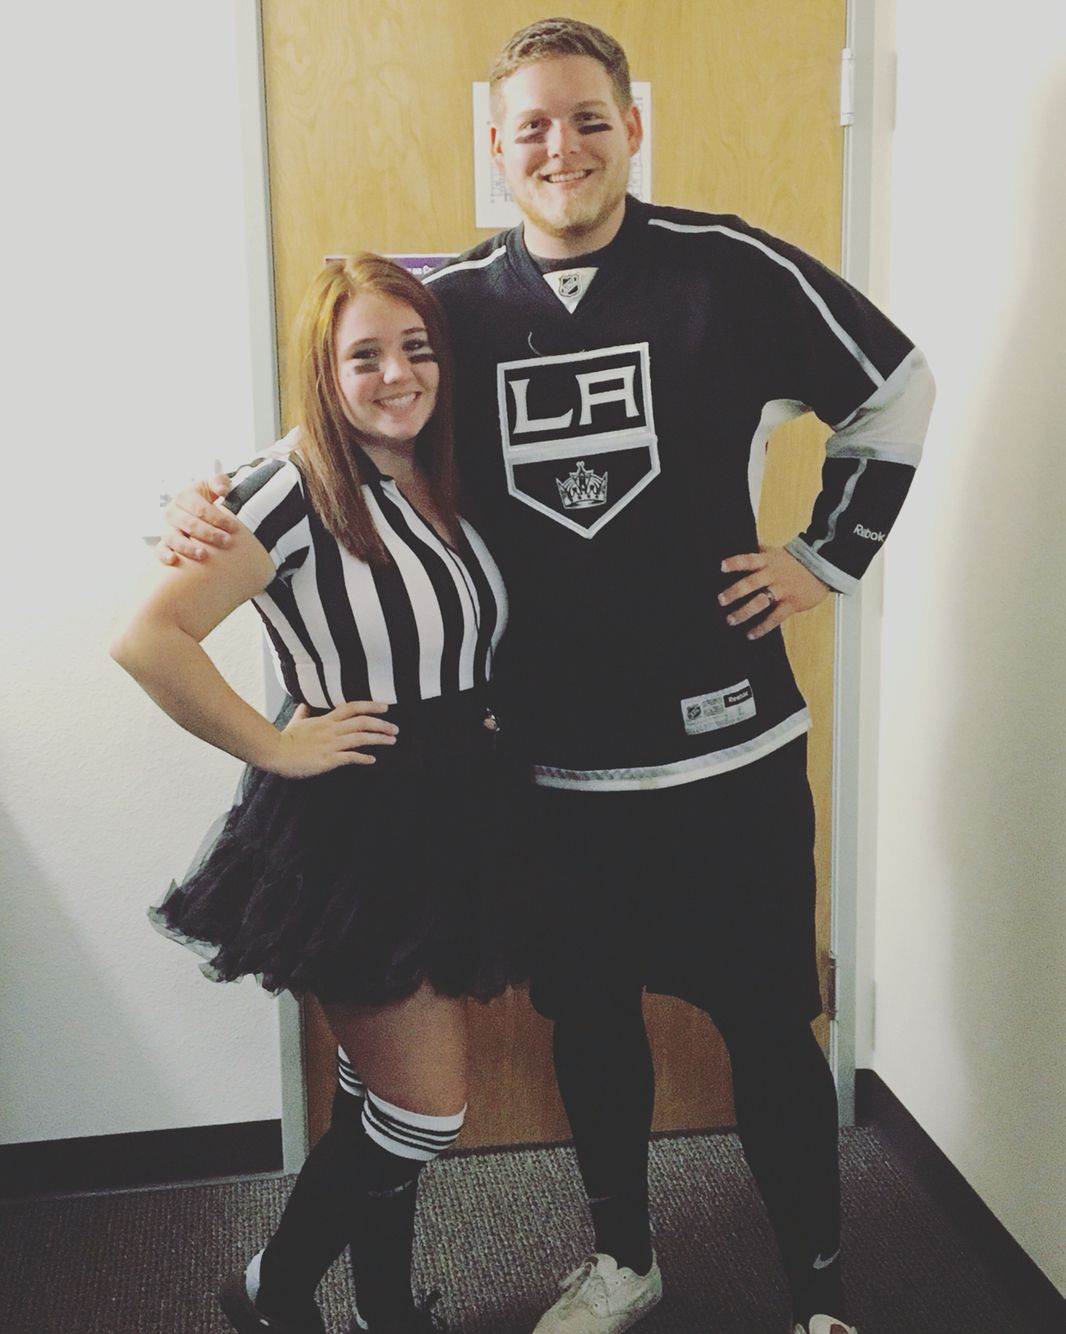 Referee and hockey player halloween costume halloween sports referee and hockey player halloween costume halloween sports goodwill diy solutioingenieria